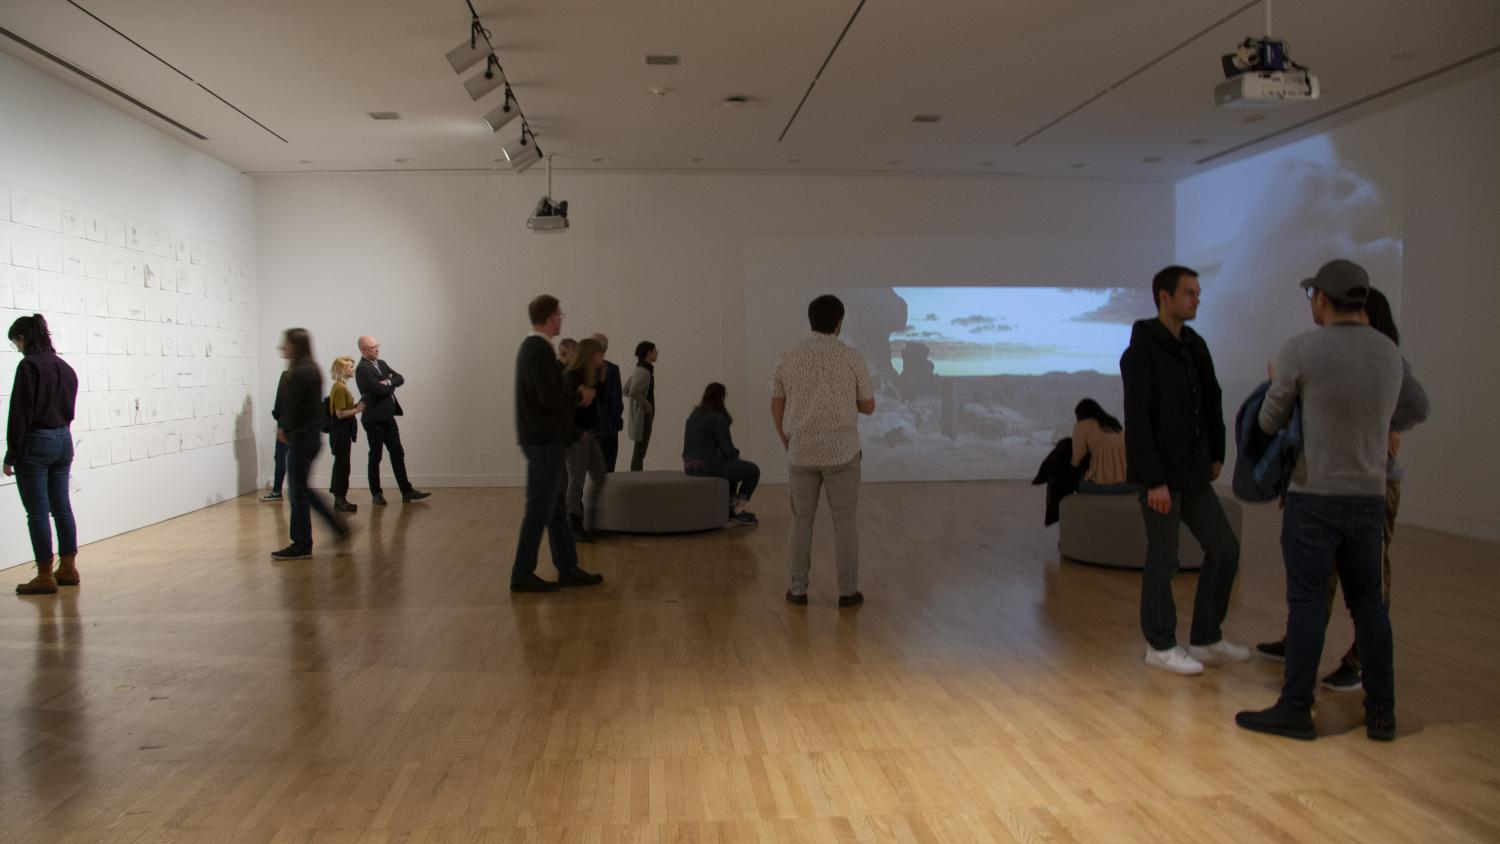 People in a white-walled art gallery viewing an installation of drawings on paper installed on the left wall and two works of video art on the front and right walls.